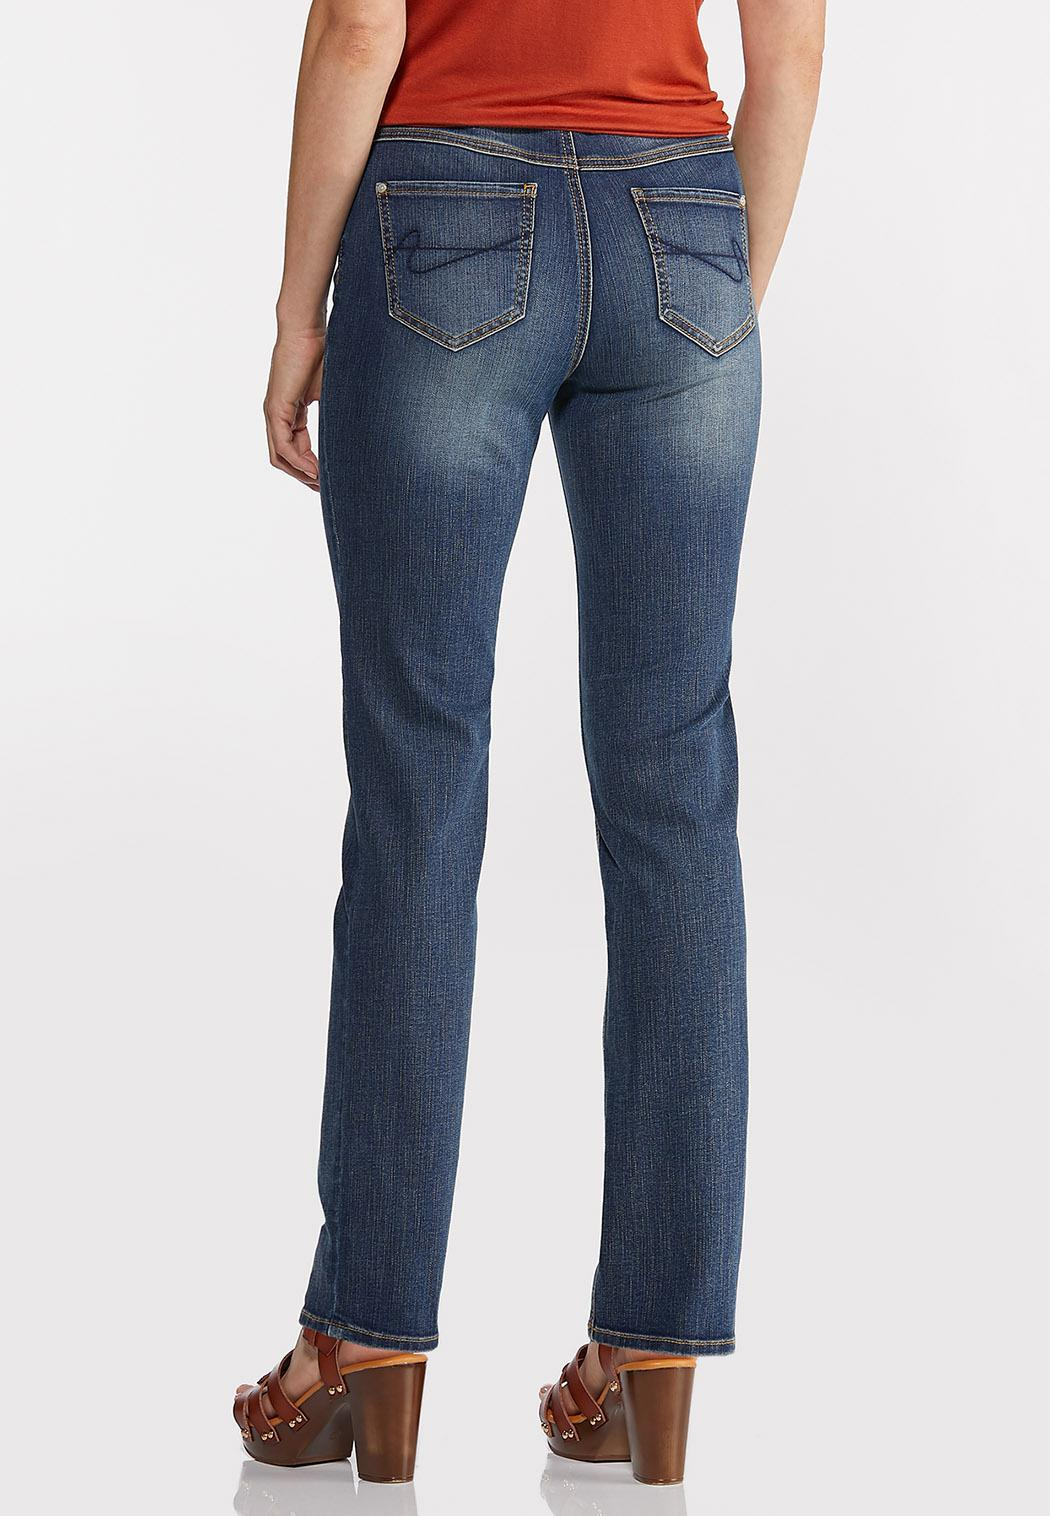 Straight High-Rise Jeans (Item #44350175)